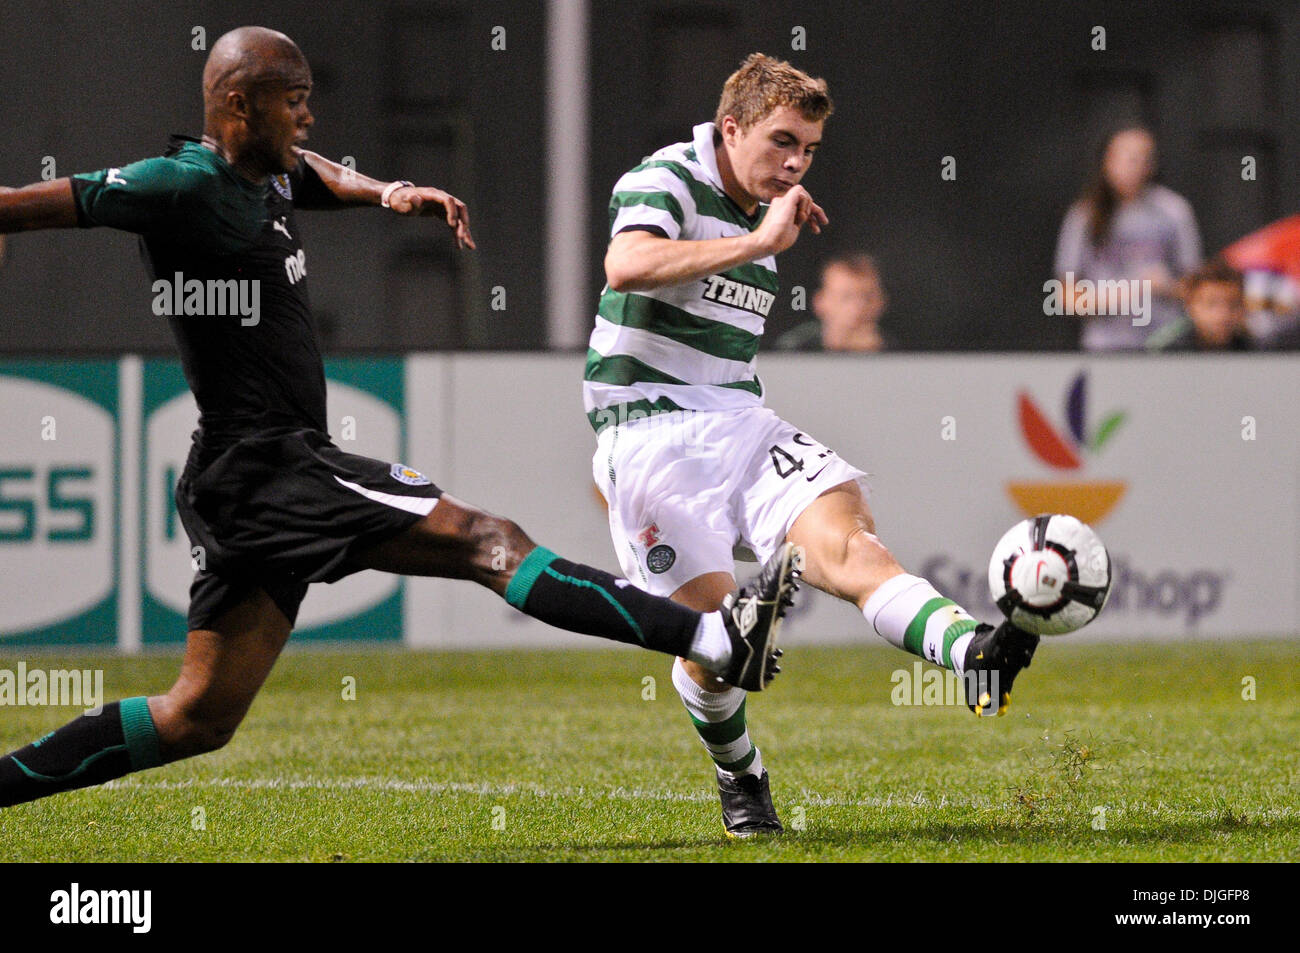 July 21, 2010 - Boston, Massachusetts, United States of America - 21 July 2010: Celtic midfielder James Forrest (49) kicks the ball towards the goal before being tackled by Sporting defender Evaldo (5). Celtic FC defeated Sporting 6 - 5 in penalty kicks, with a final 1 - 1 score during an international friendly at Fenway Park, Boston, Massachusetts to win the first Fenway Football  - Stock Image